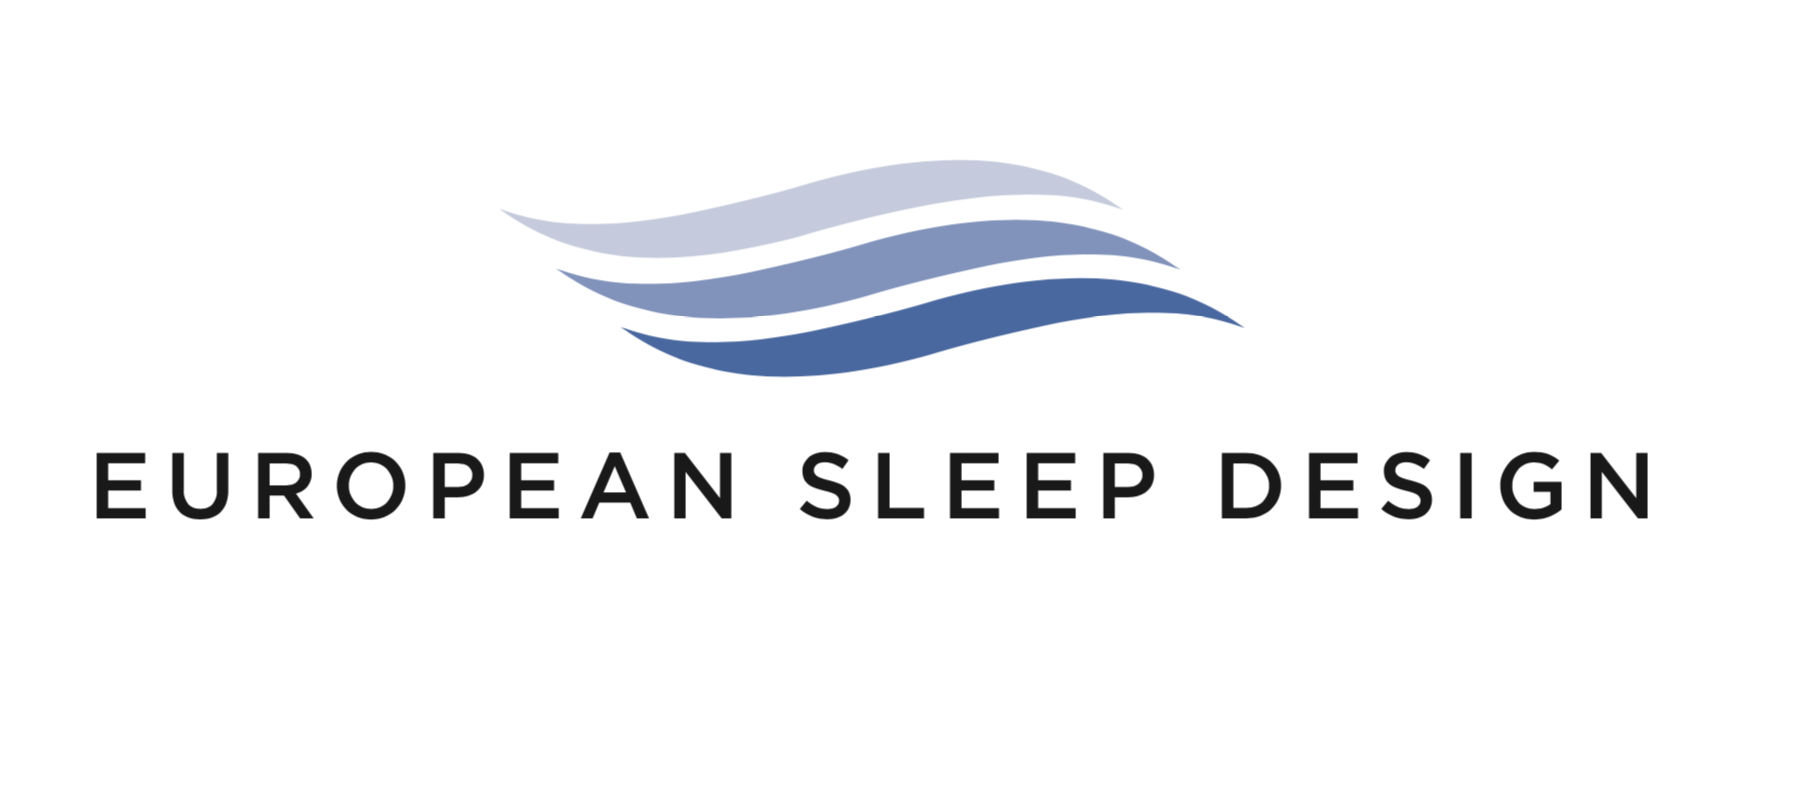 European Sleep Design